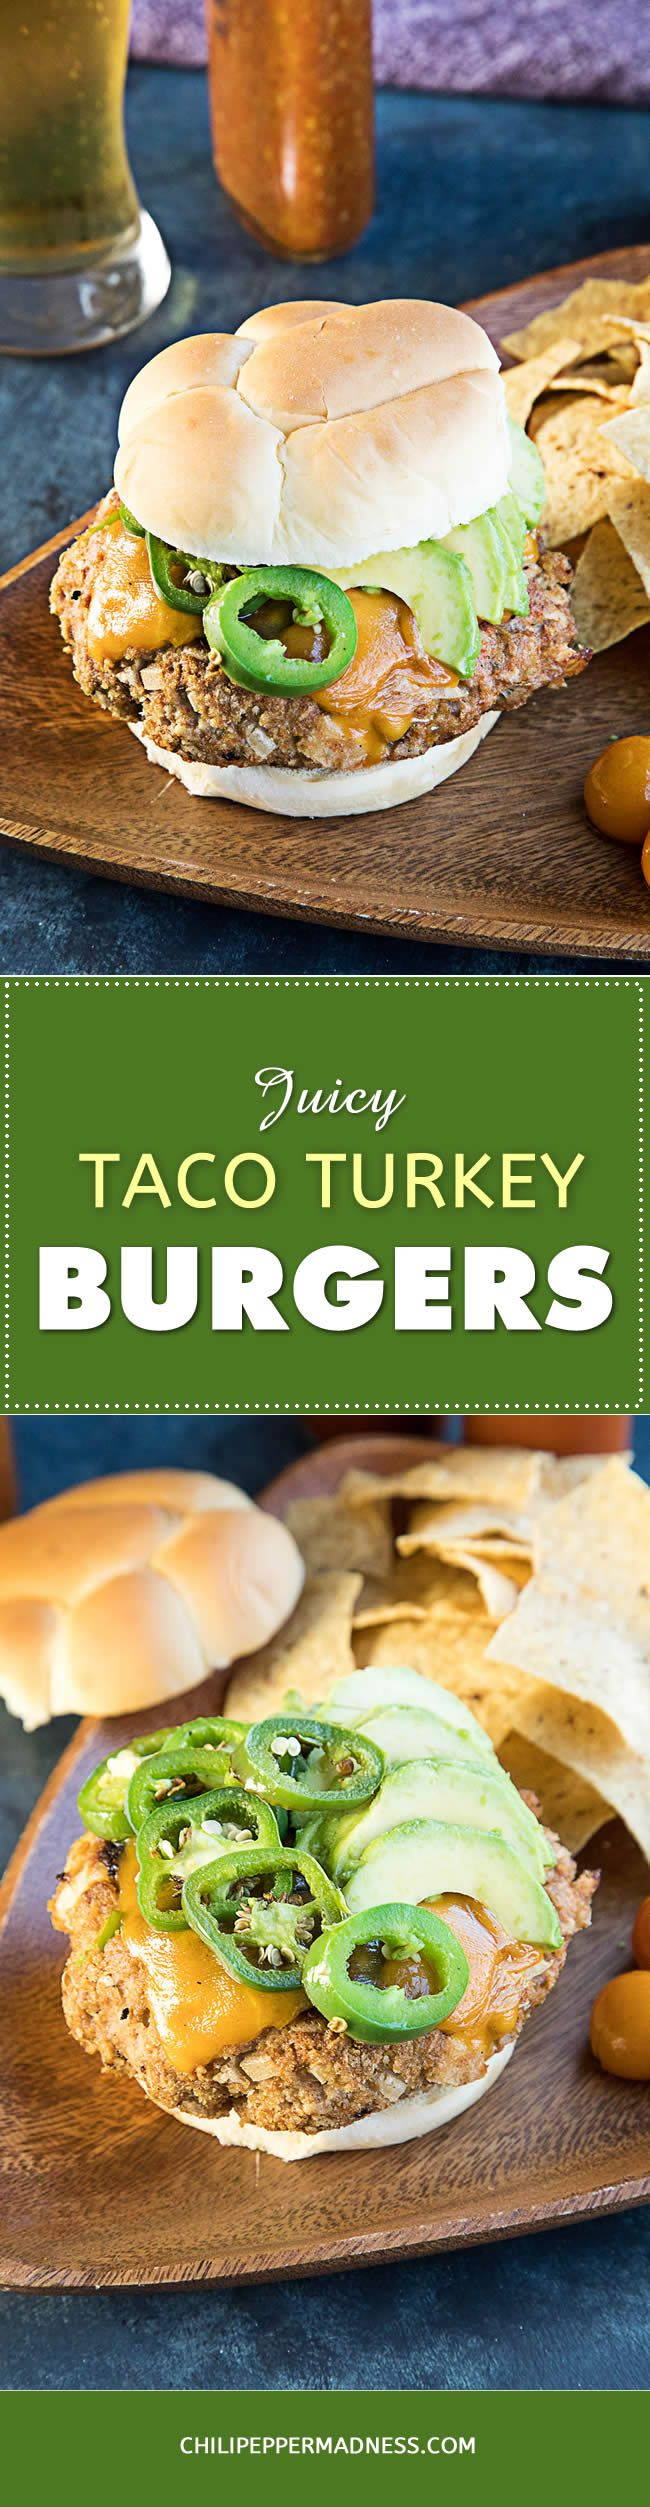 Taco Turkey Burgers – A recipe for perfect, thick, juicy turkey burgers generously seasoned with taco seasoning, topped with cheddar cheese, seared jalapenos and sliced avocado. You haven't had a turkey burger until you've had this one.